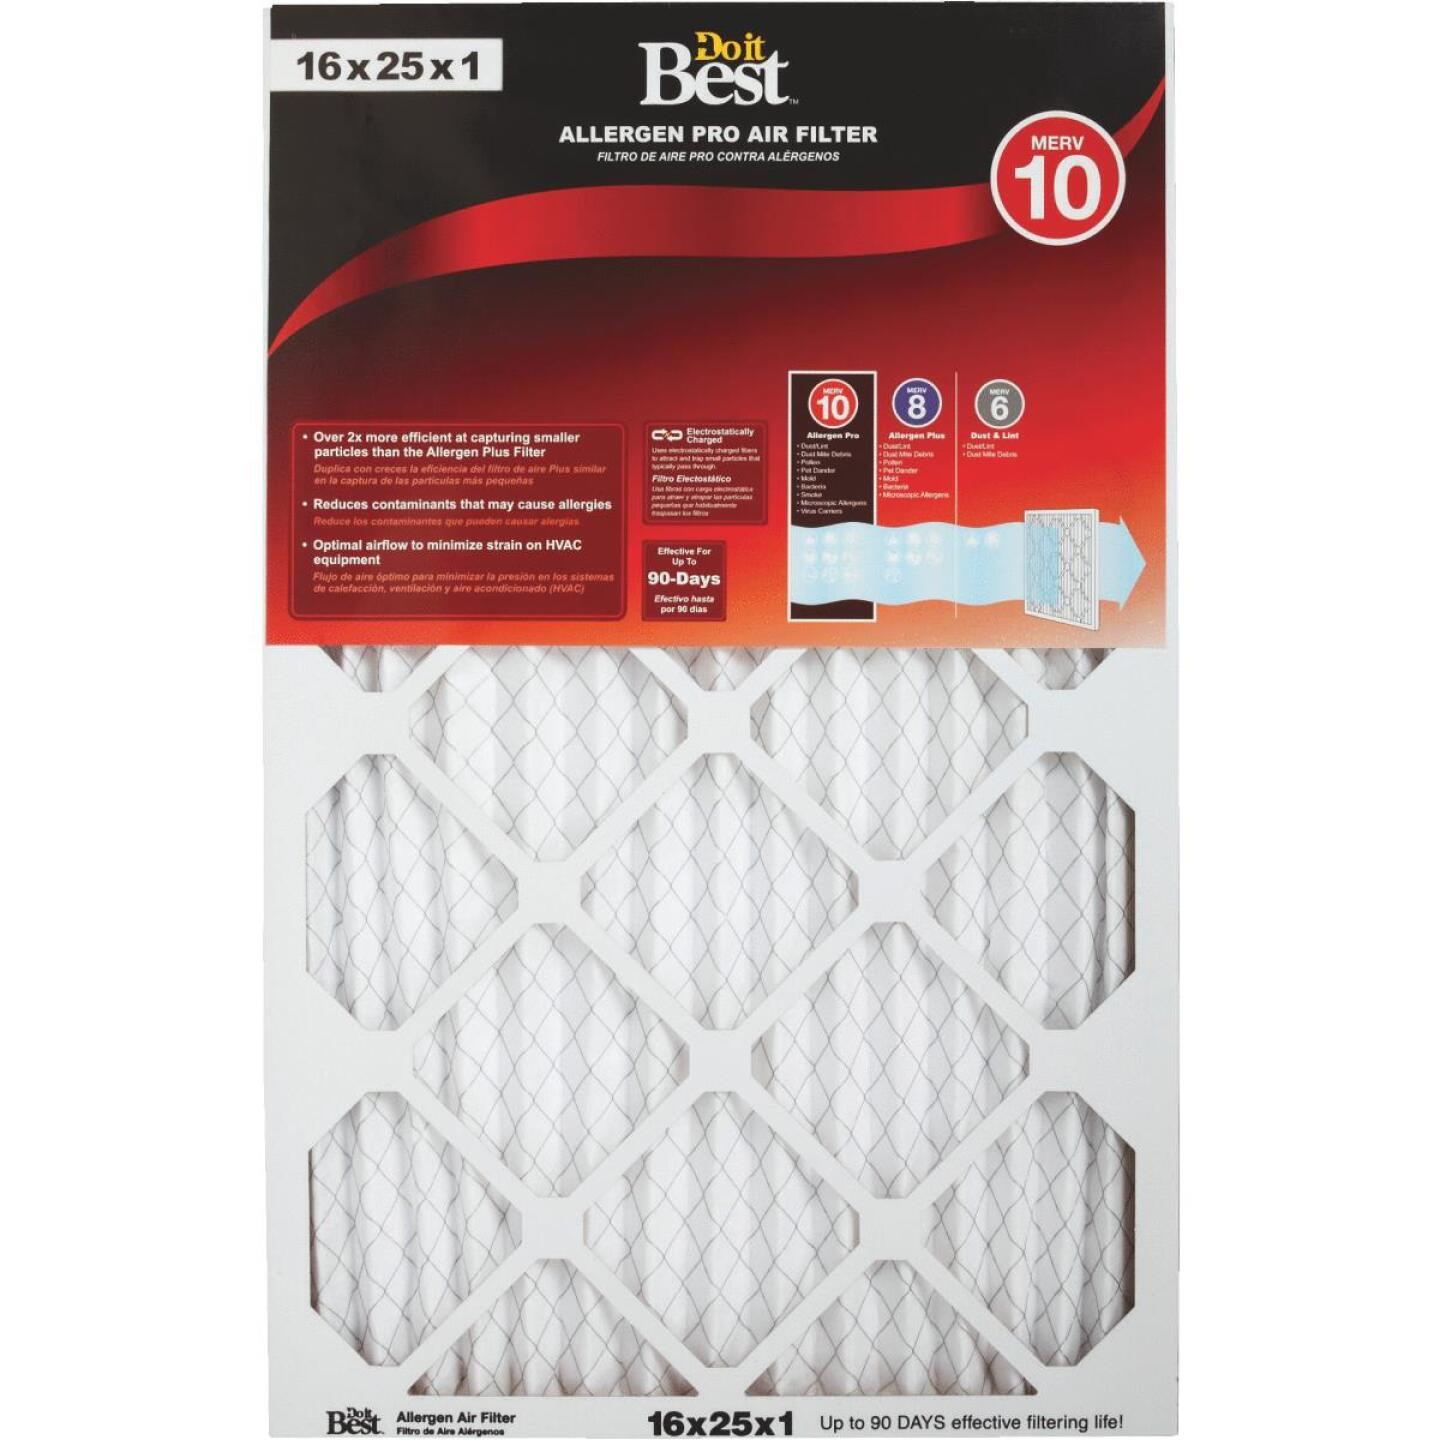 Do it Best 16 In. x 25 In. x 1 In. Allergen Pro MERV 10 Furnace Filter Image 1